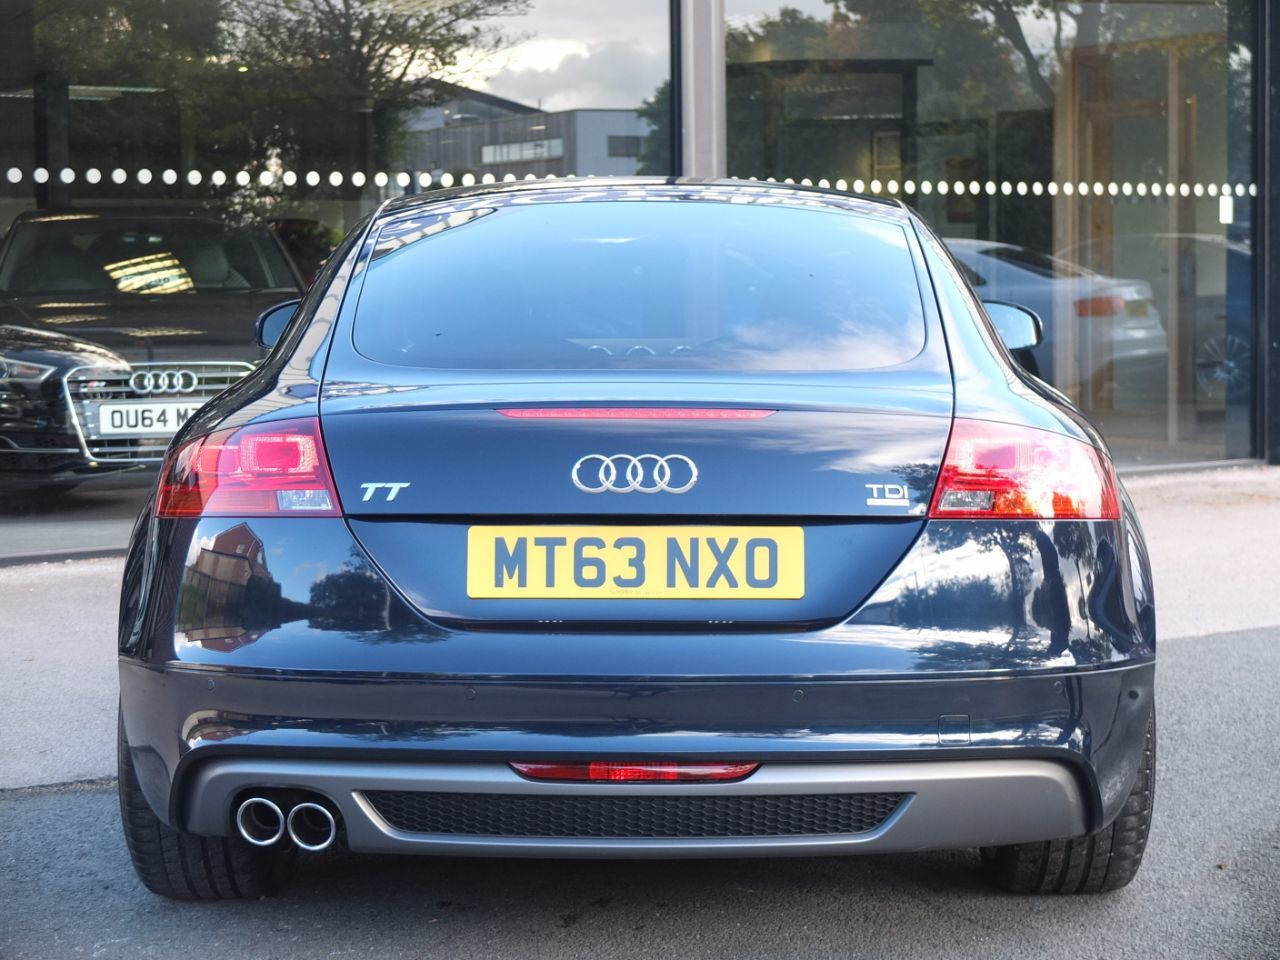 Audi TT Coupe 2.0 TDI quattro Black Edition S Tronic Coupe Diesel Midnight Blue Metallic Audi Exclusive Paint Finish